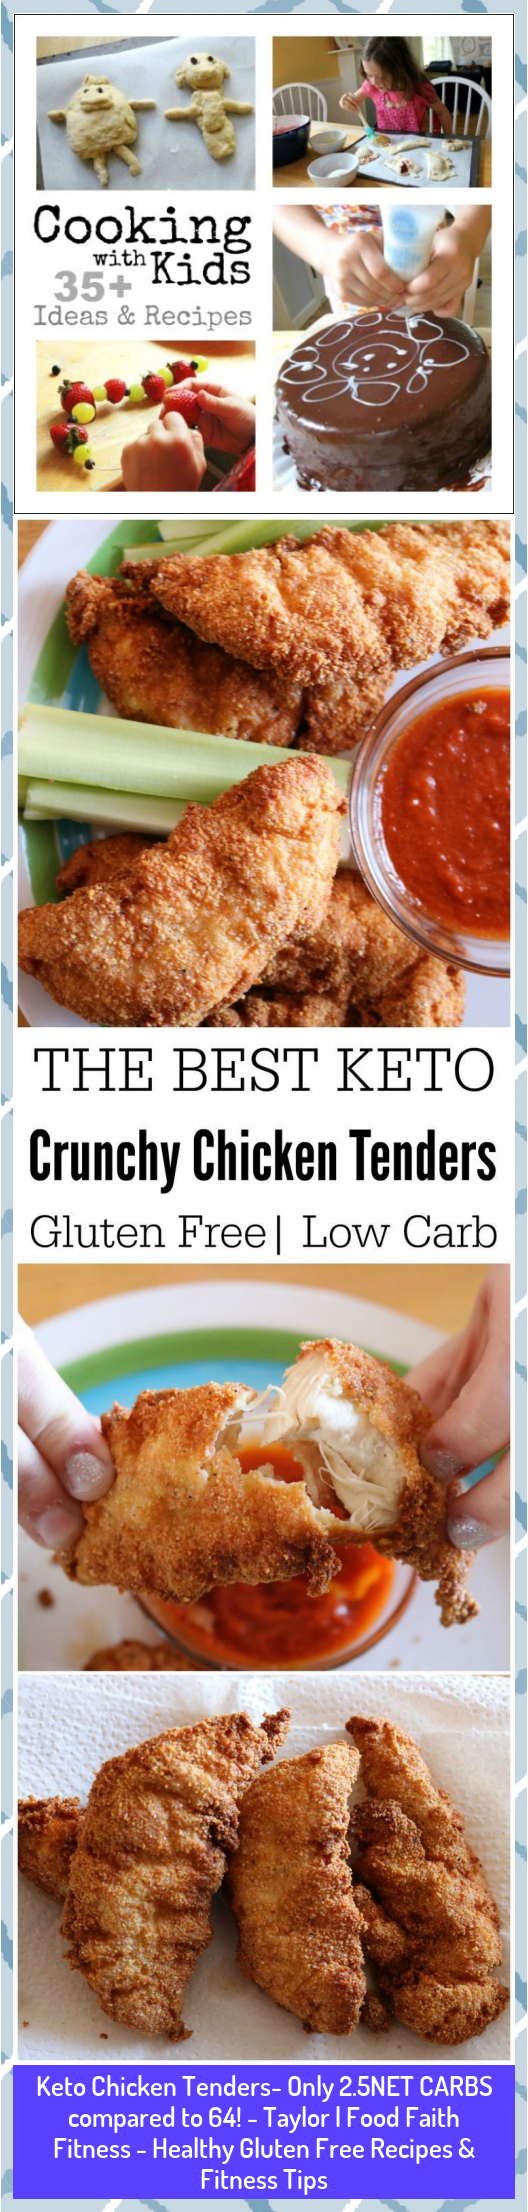 Keto Chicken Tenders- Only 2.5NET CARBS compared to 64! - Taylor | Food Faith Fitness - Healthy Glut...